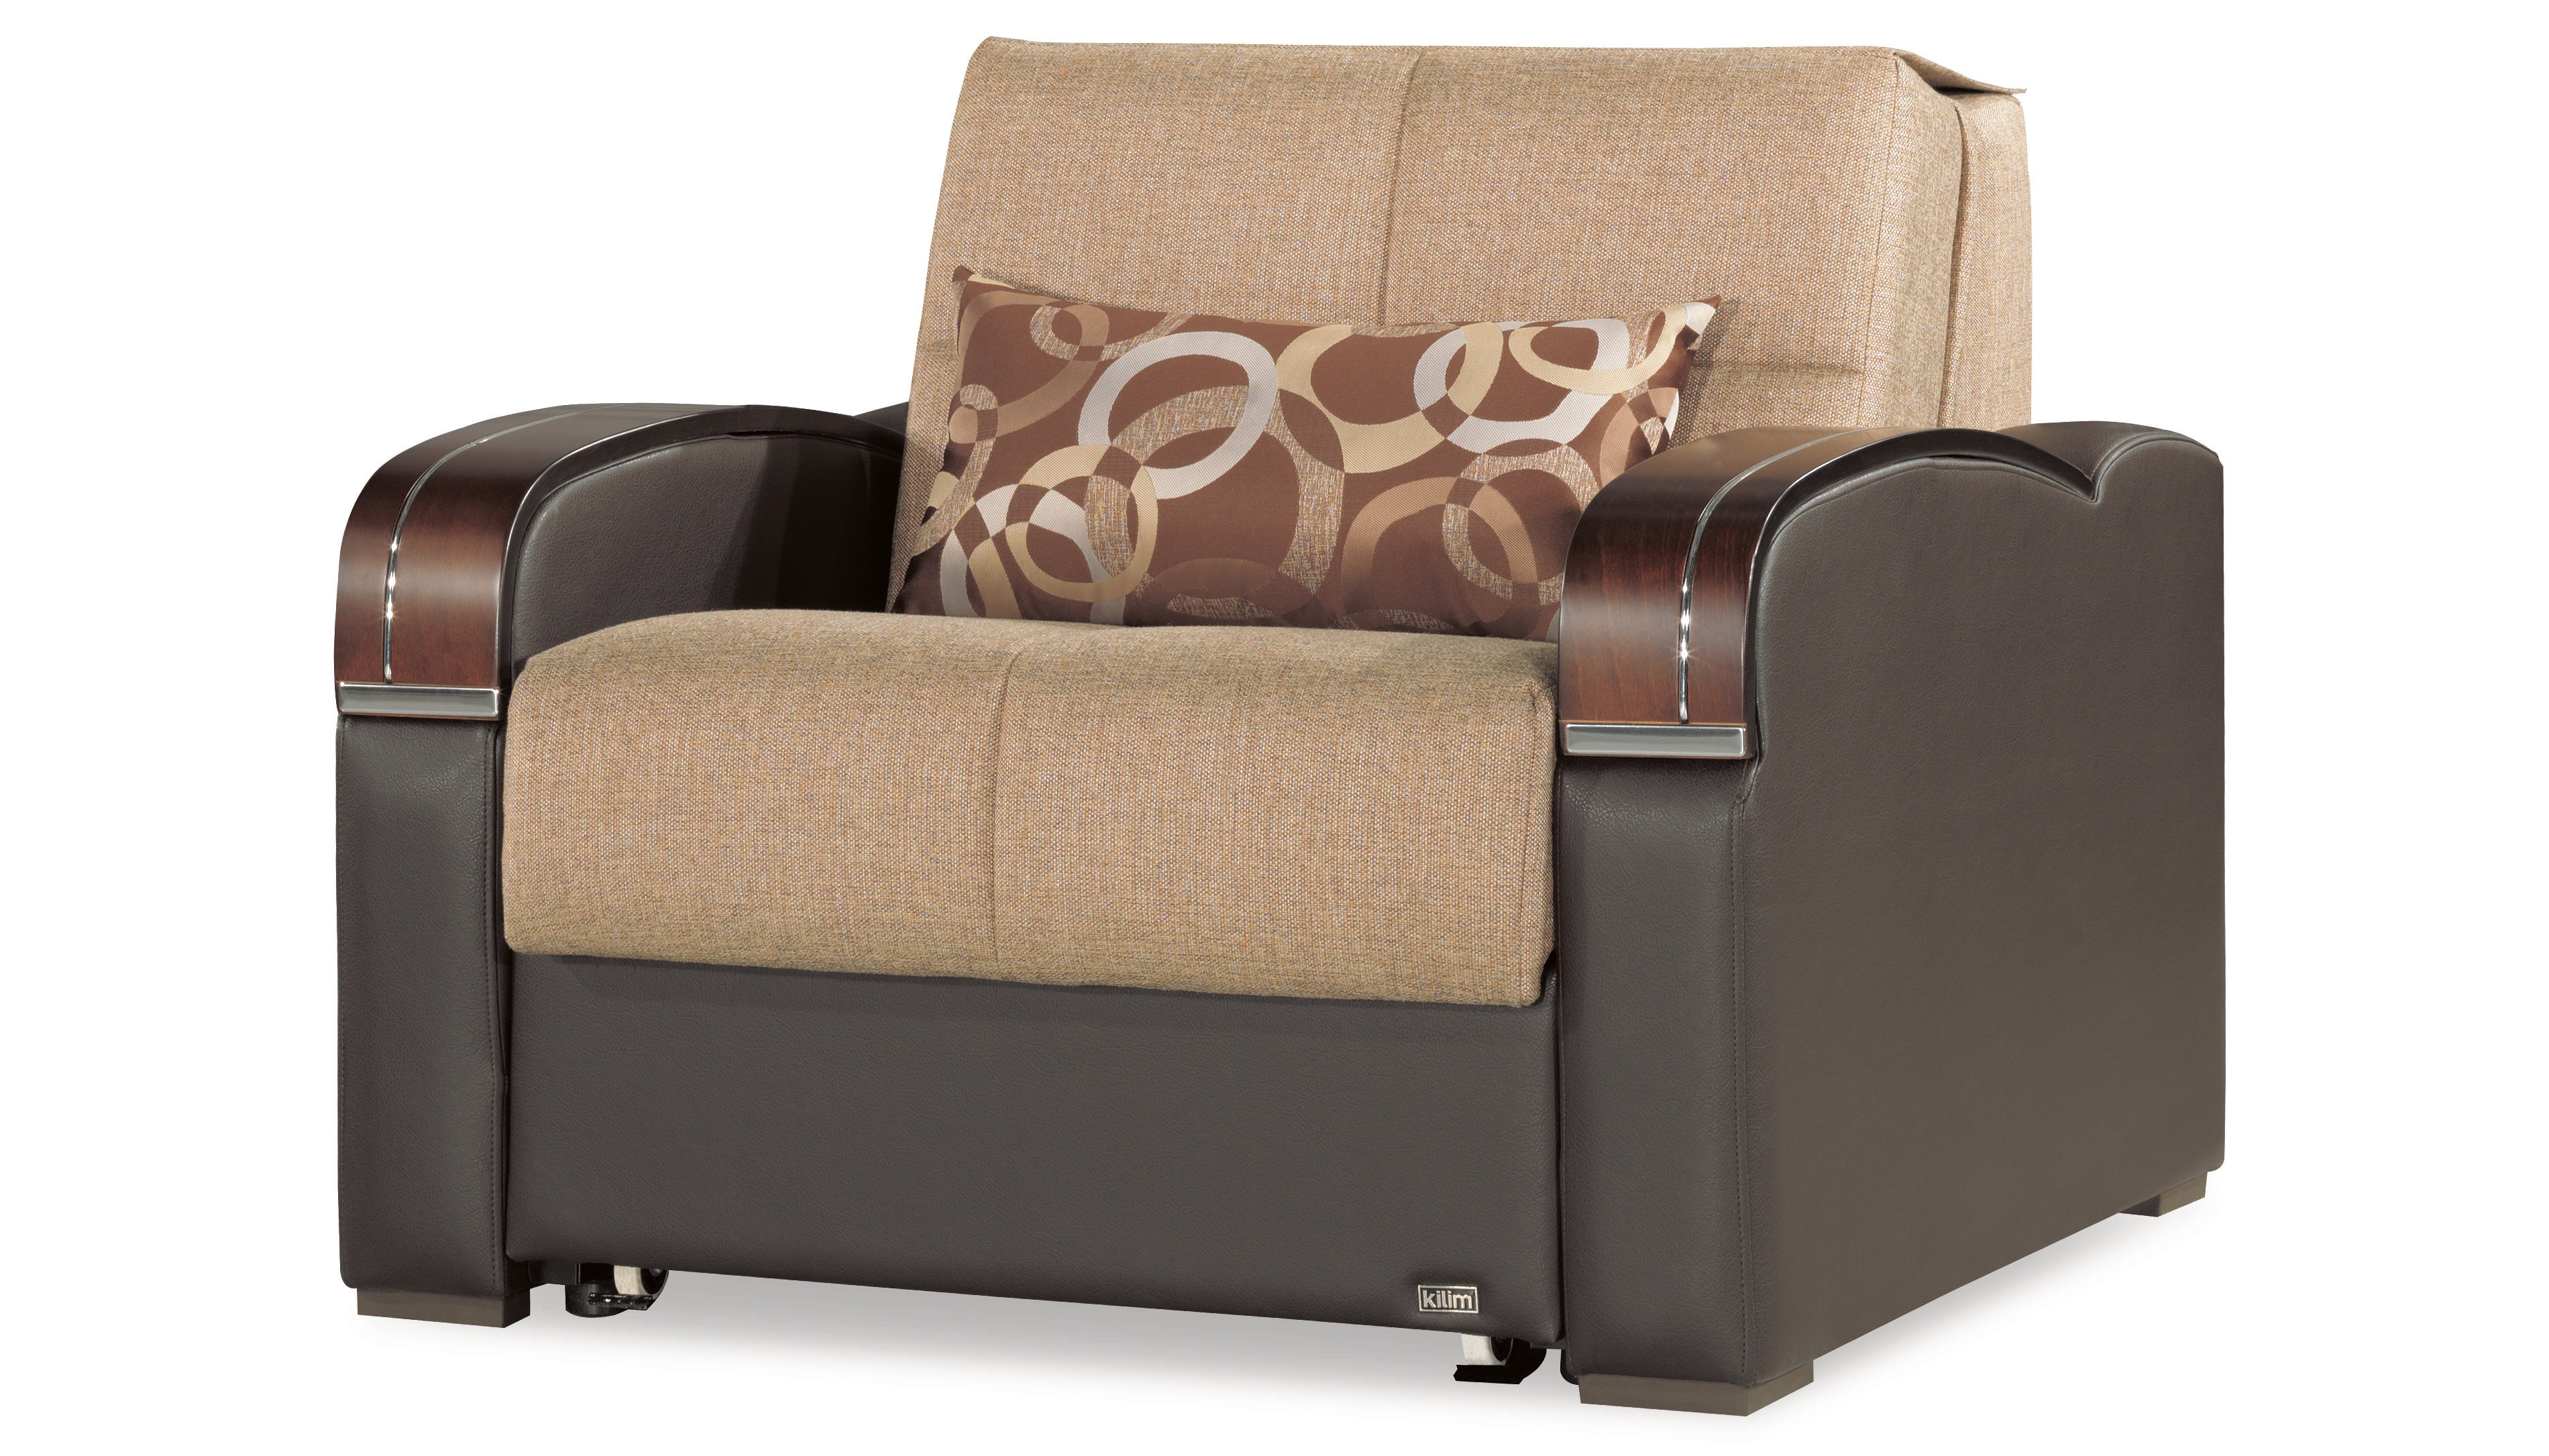 the best attitude 80eaf 2f76a Sleep Plus Brown Convertible Chair Bed by Casamode